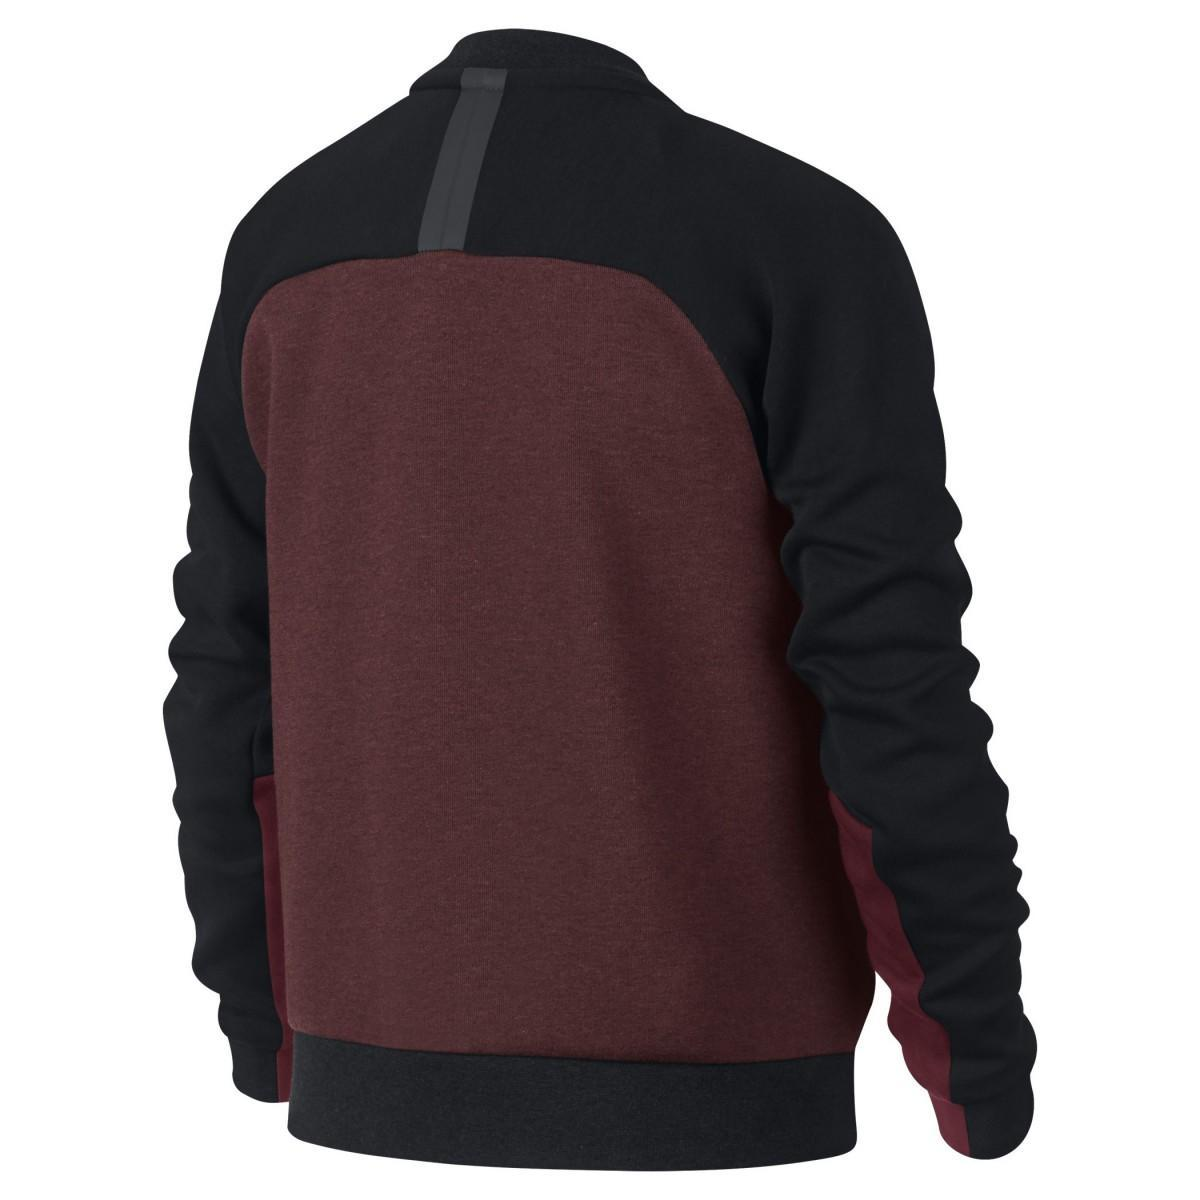 Куртка детская Nike Sportswear Tech Fleece Bomber Dark Team Red/Heather/Team Red/Anthracite